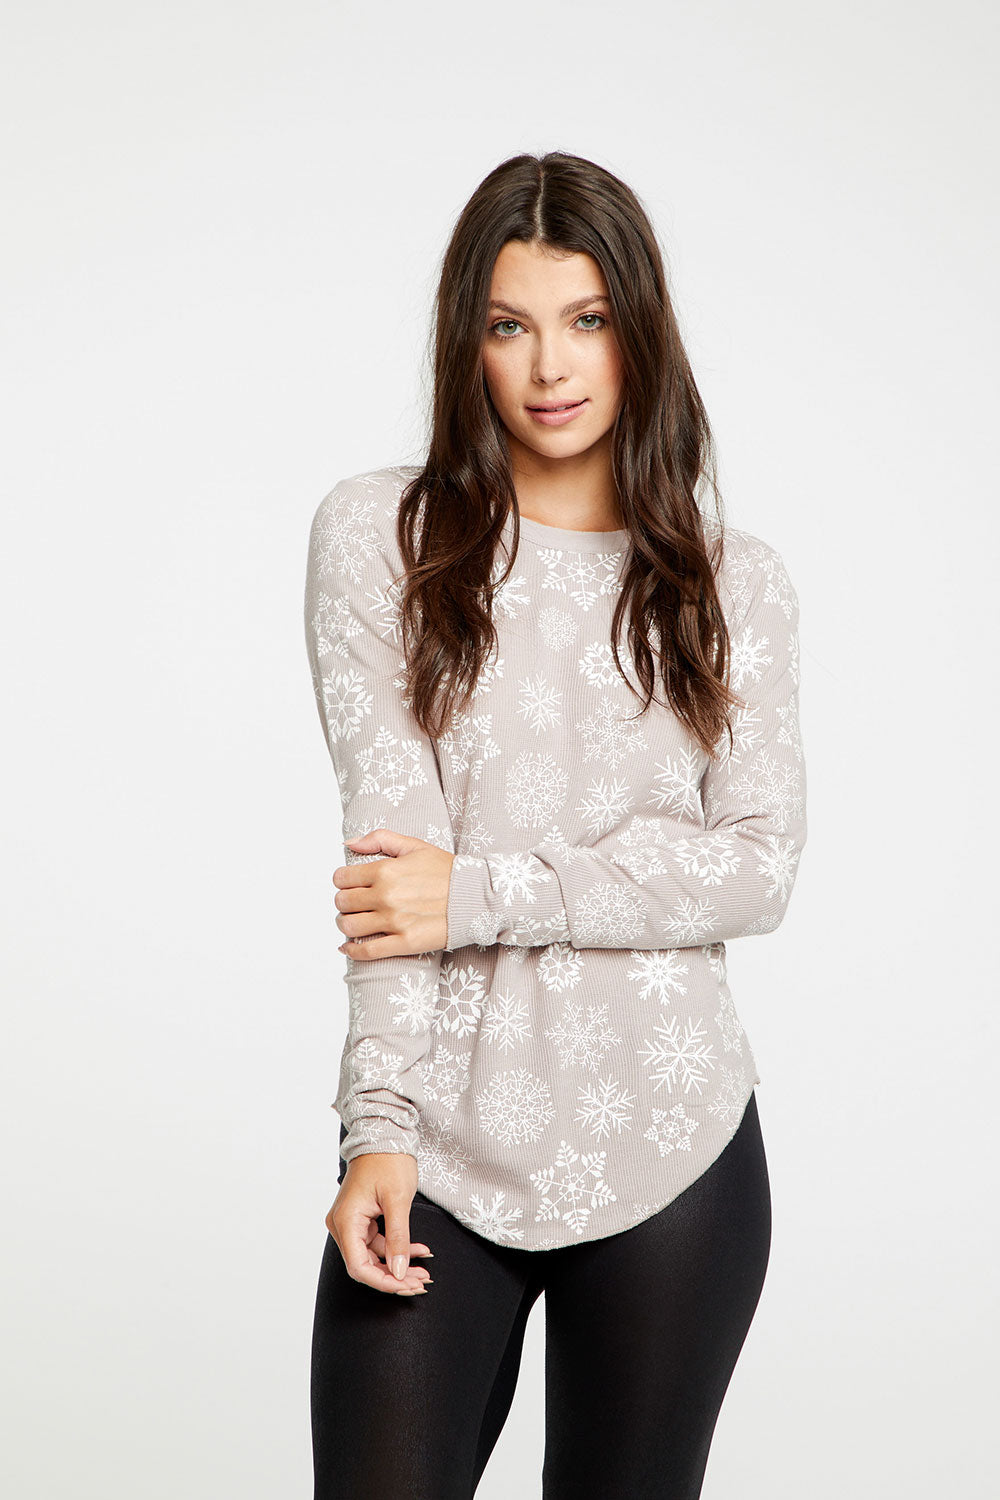 White Snowflakes WOMENS chaserbrand4.myshopify.com